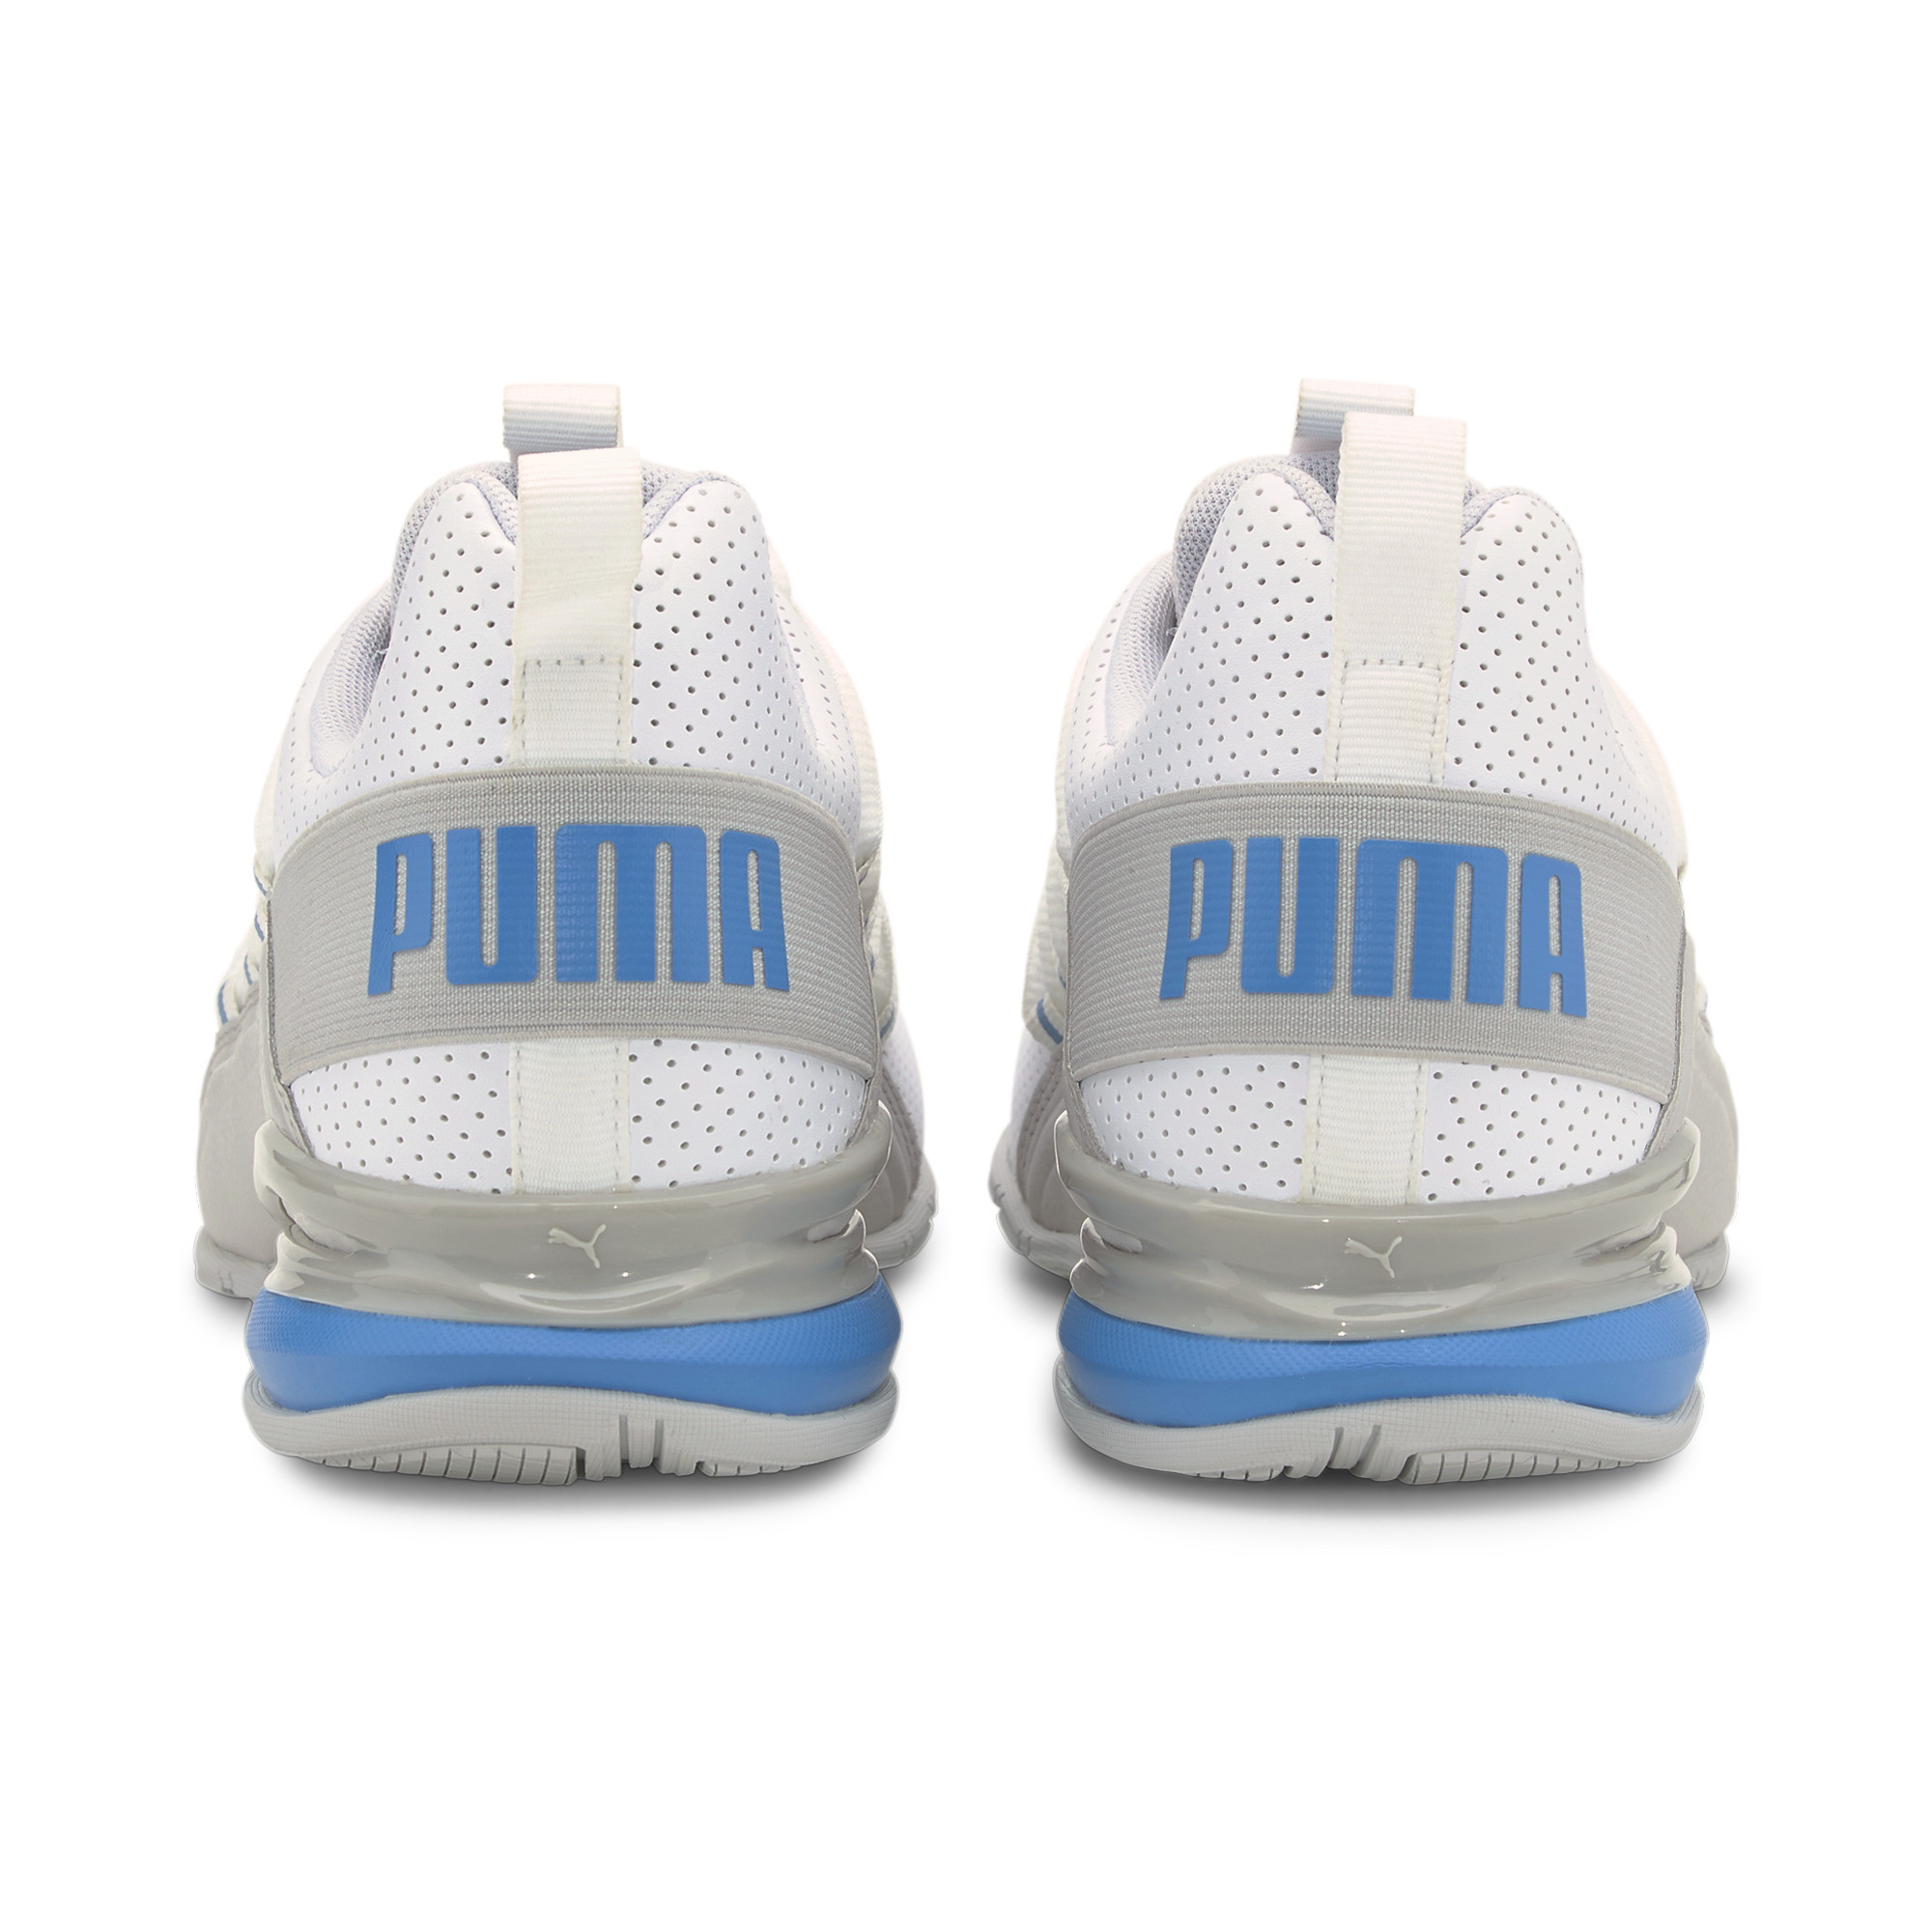 PUMA-Men-039-s-Axelion-Perf-Training-Shoes thumbnail 3